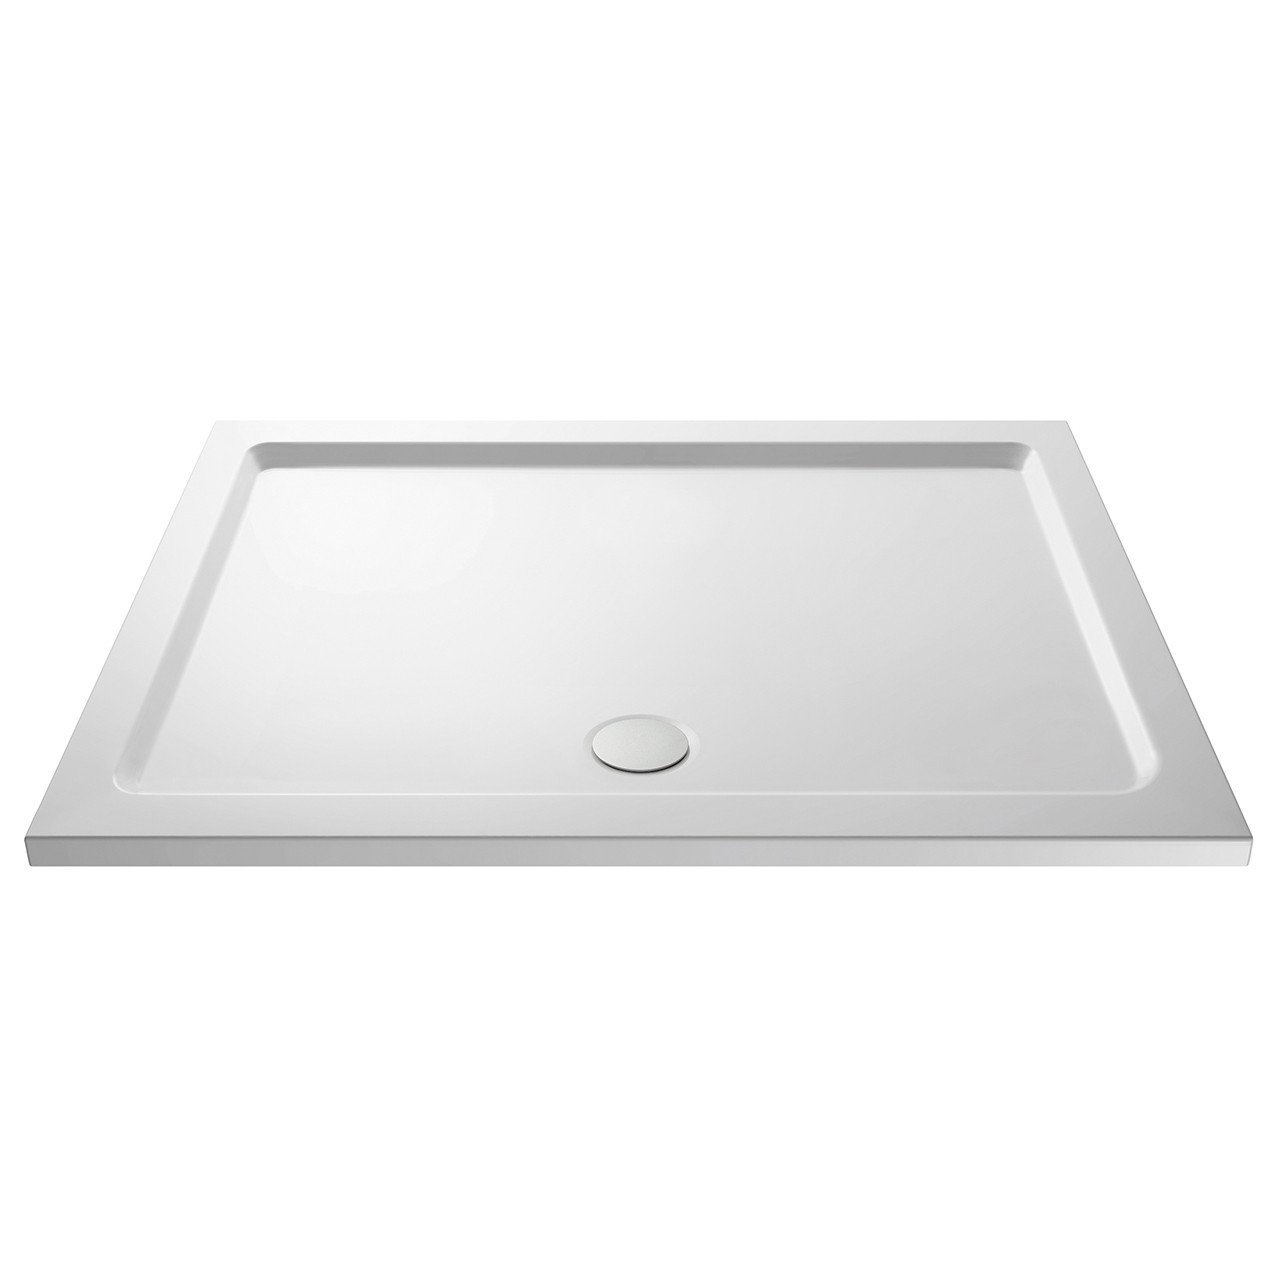 Nuie Pearlstone 1500mm x 700mm Rectangular Shower Tray with Centre Edge Waste - NTP041